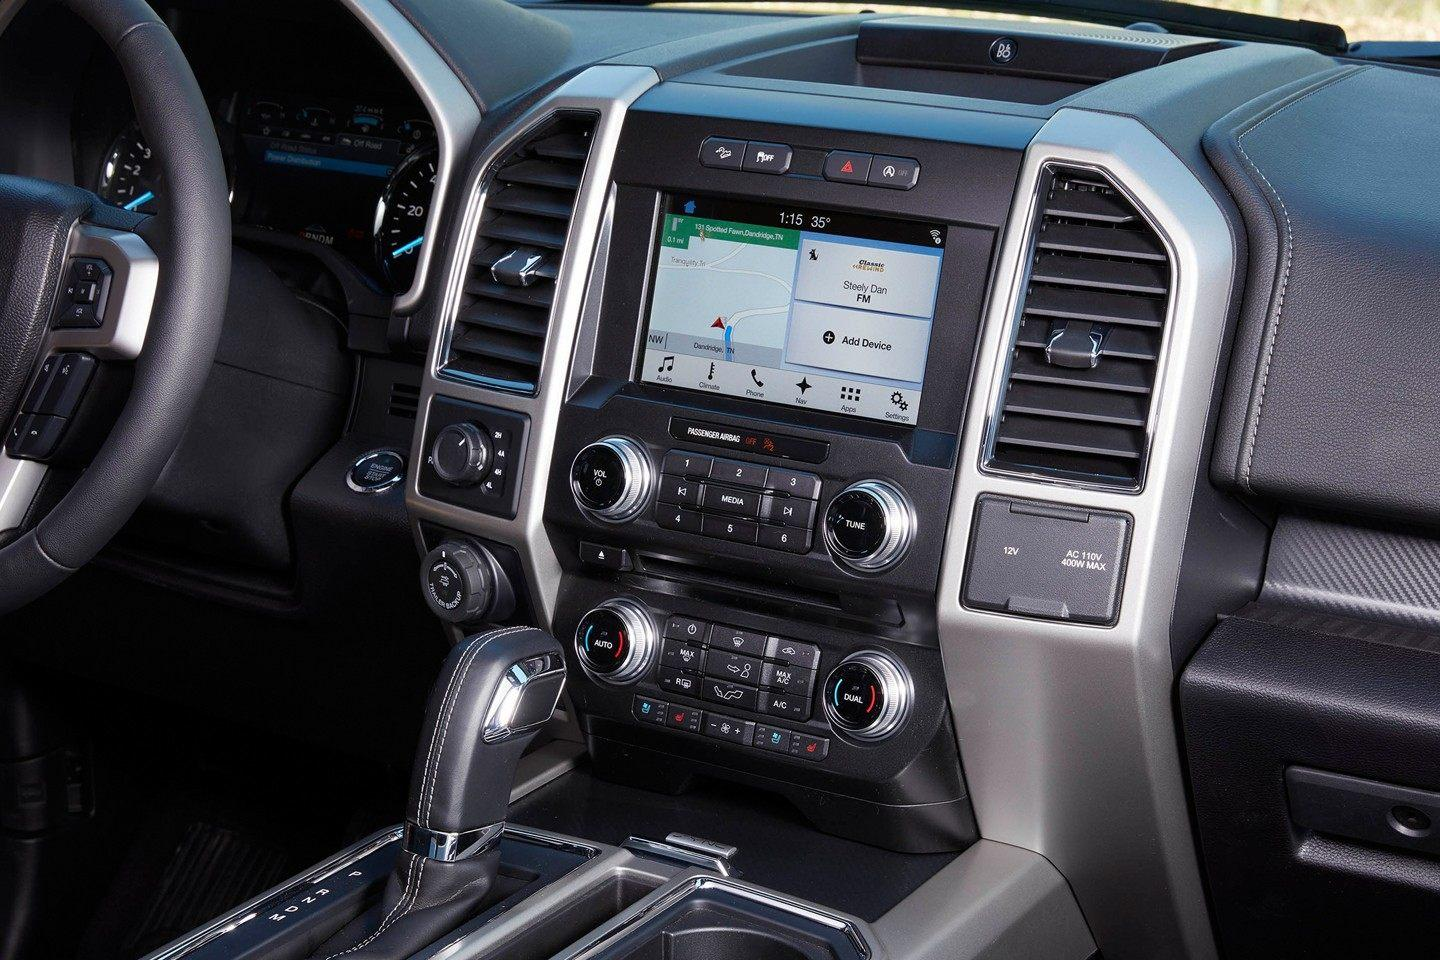 2018 Ford F-150 Lariat - Interior